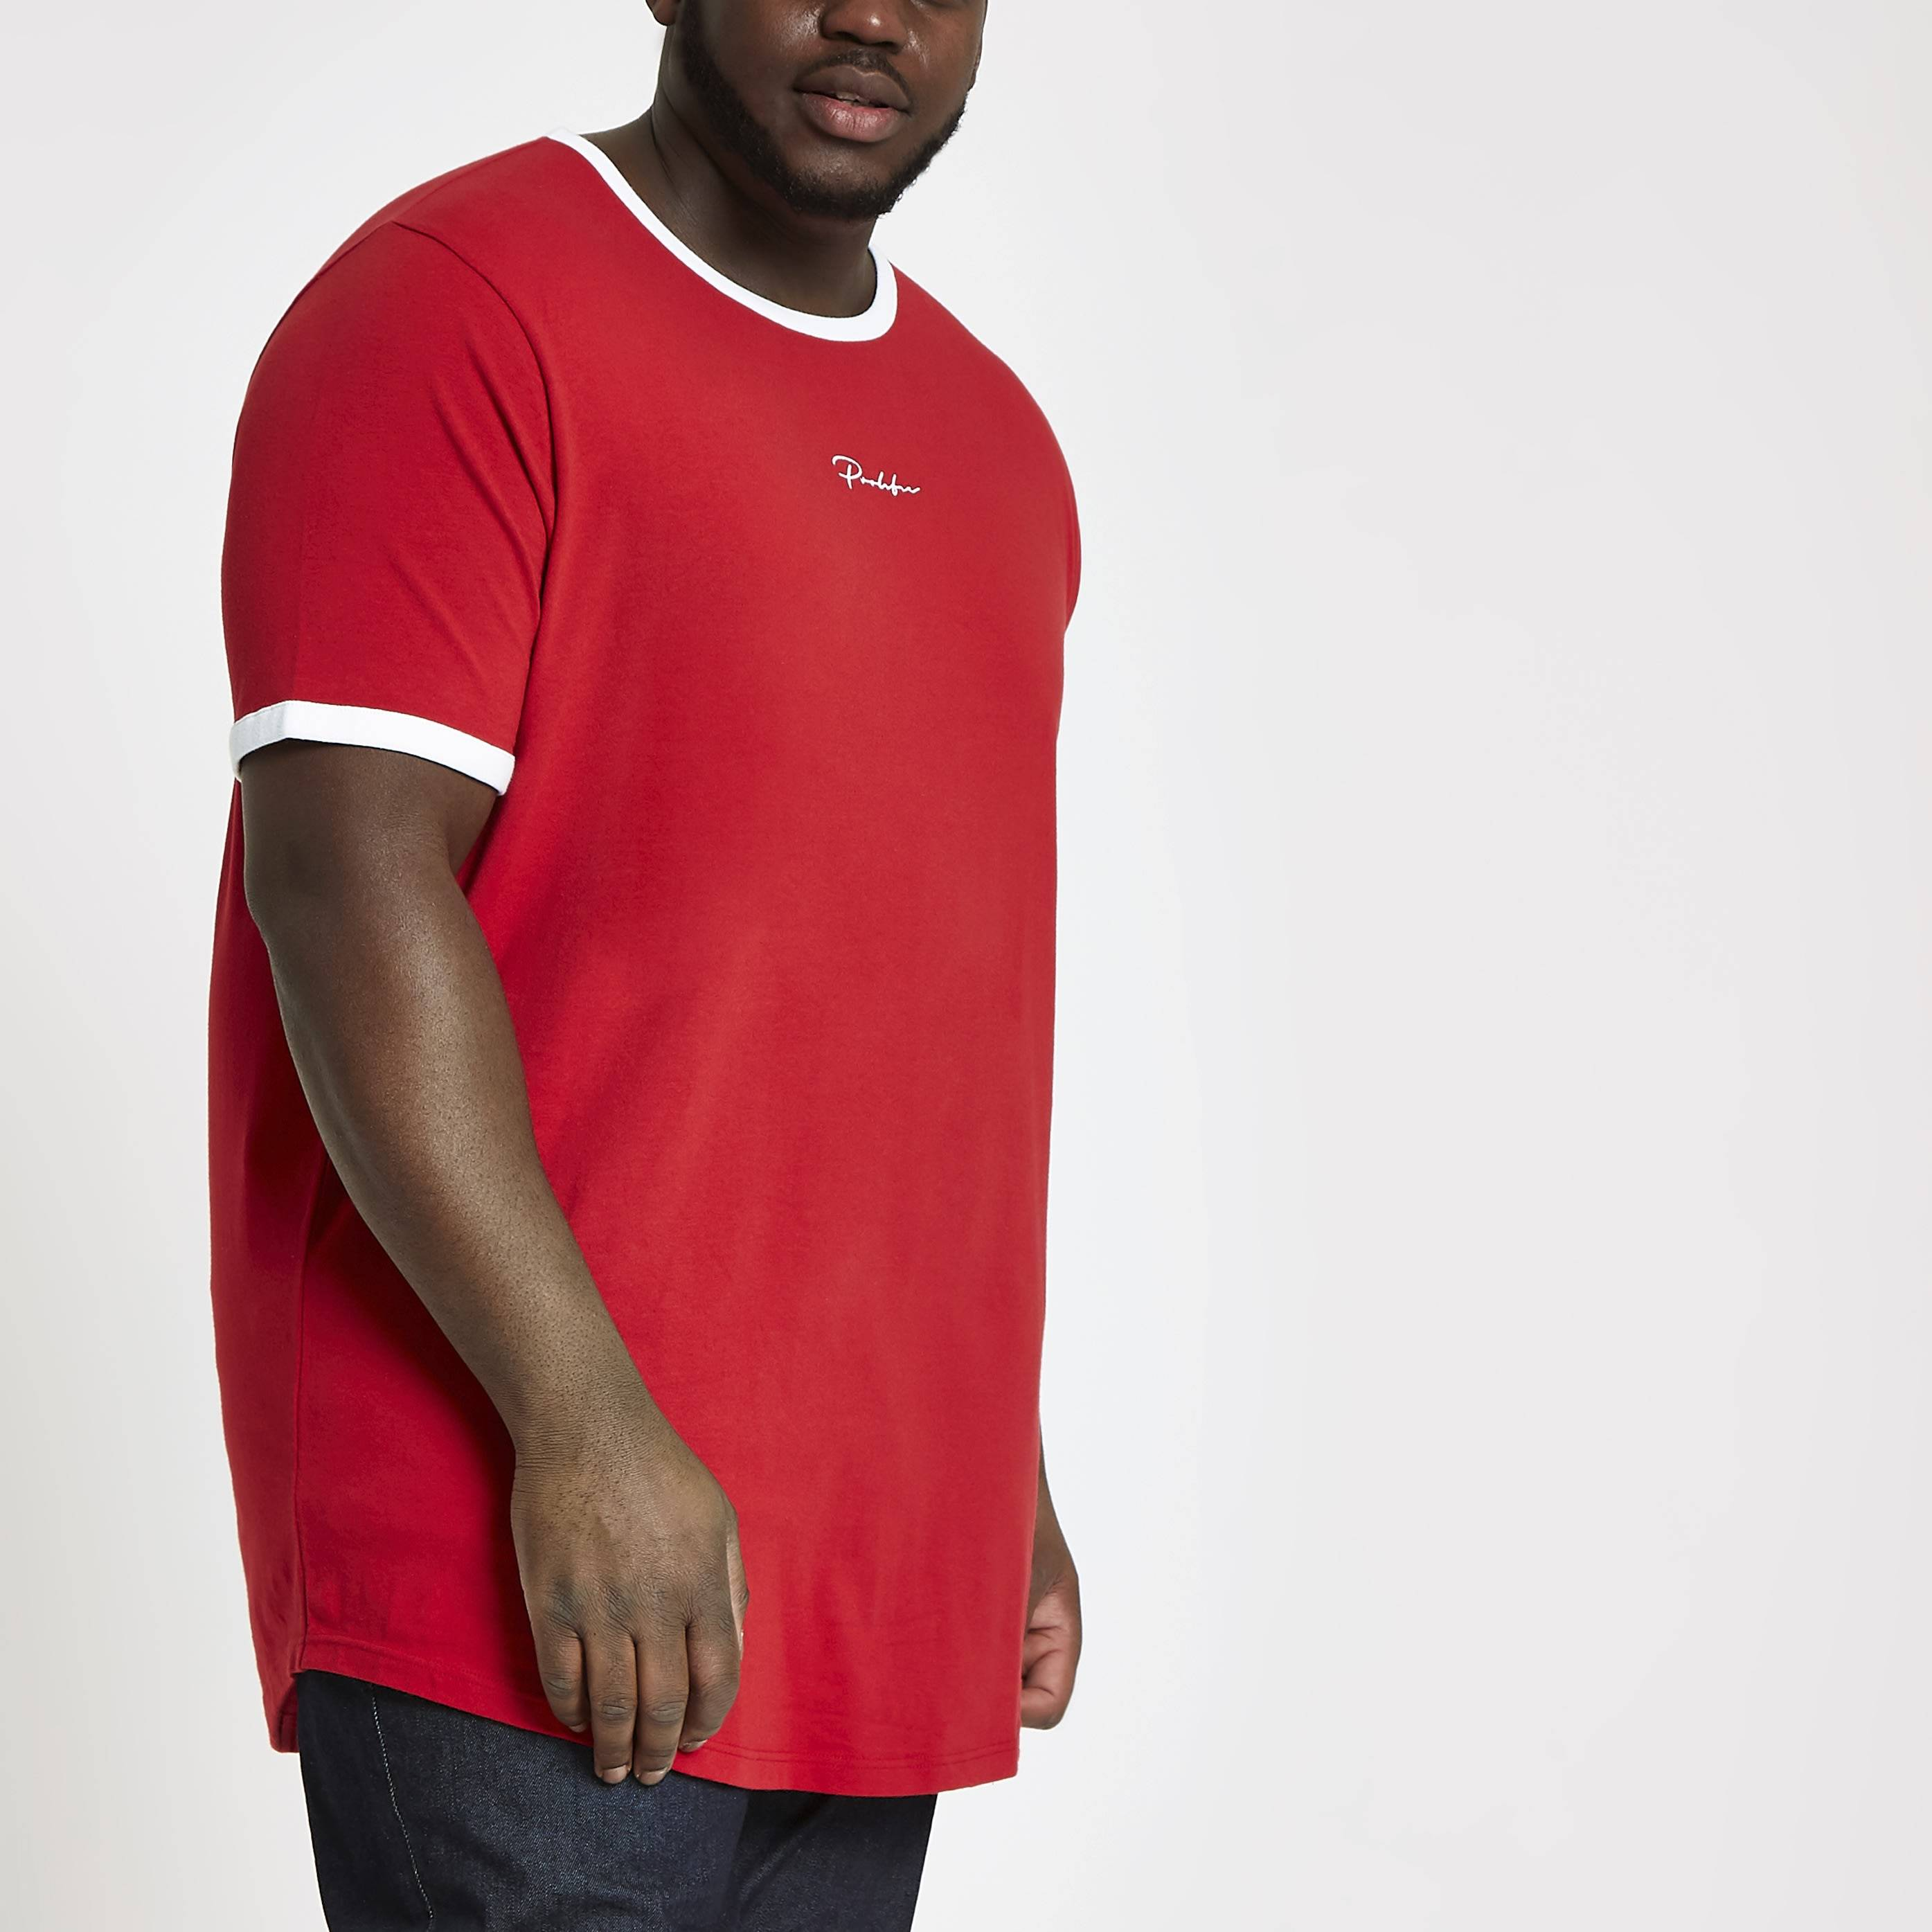 River Island Mens Big and Tall Red 'Prolific' curve T-shirt (XXXL)